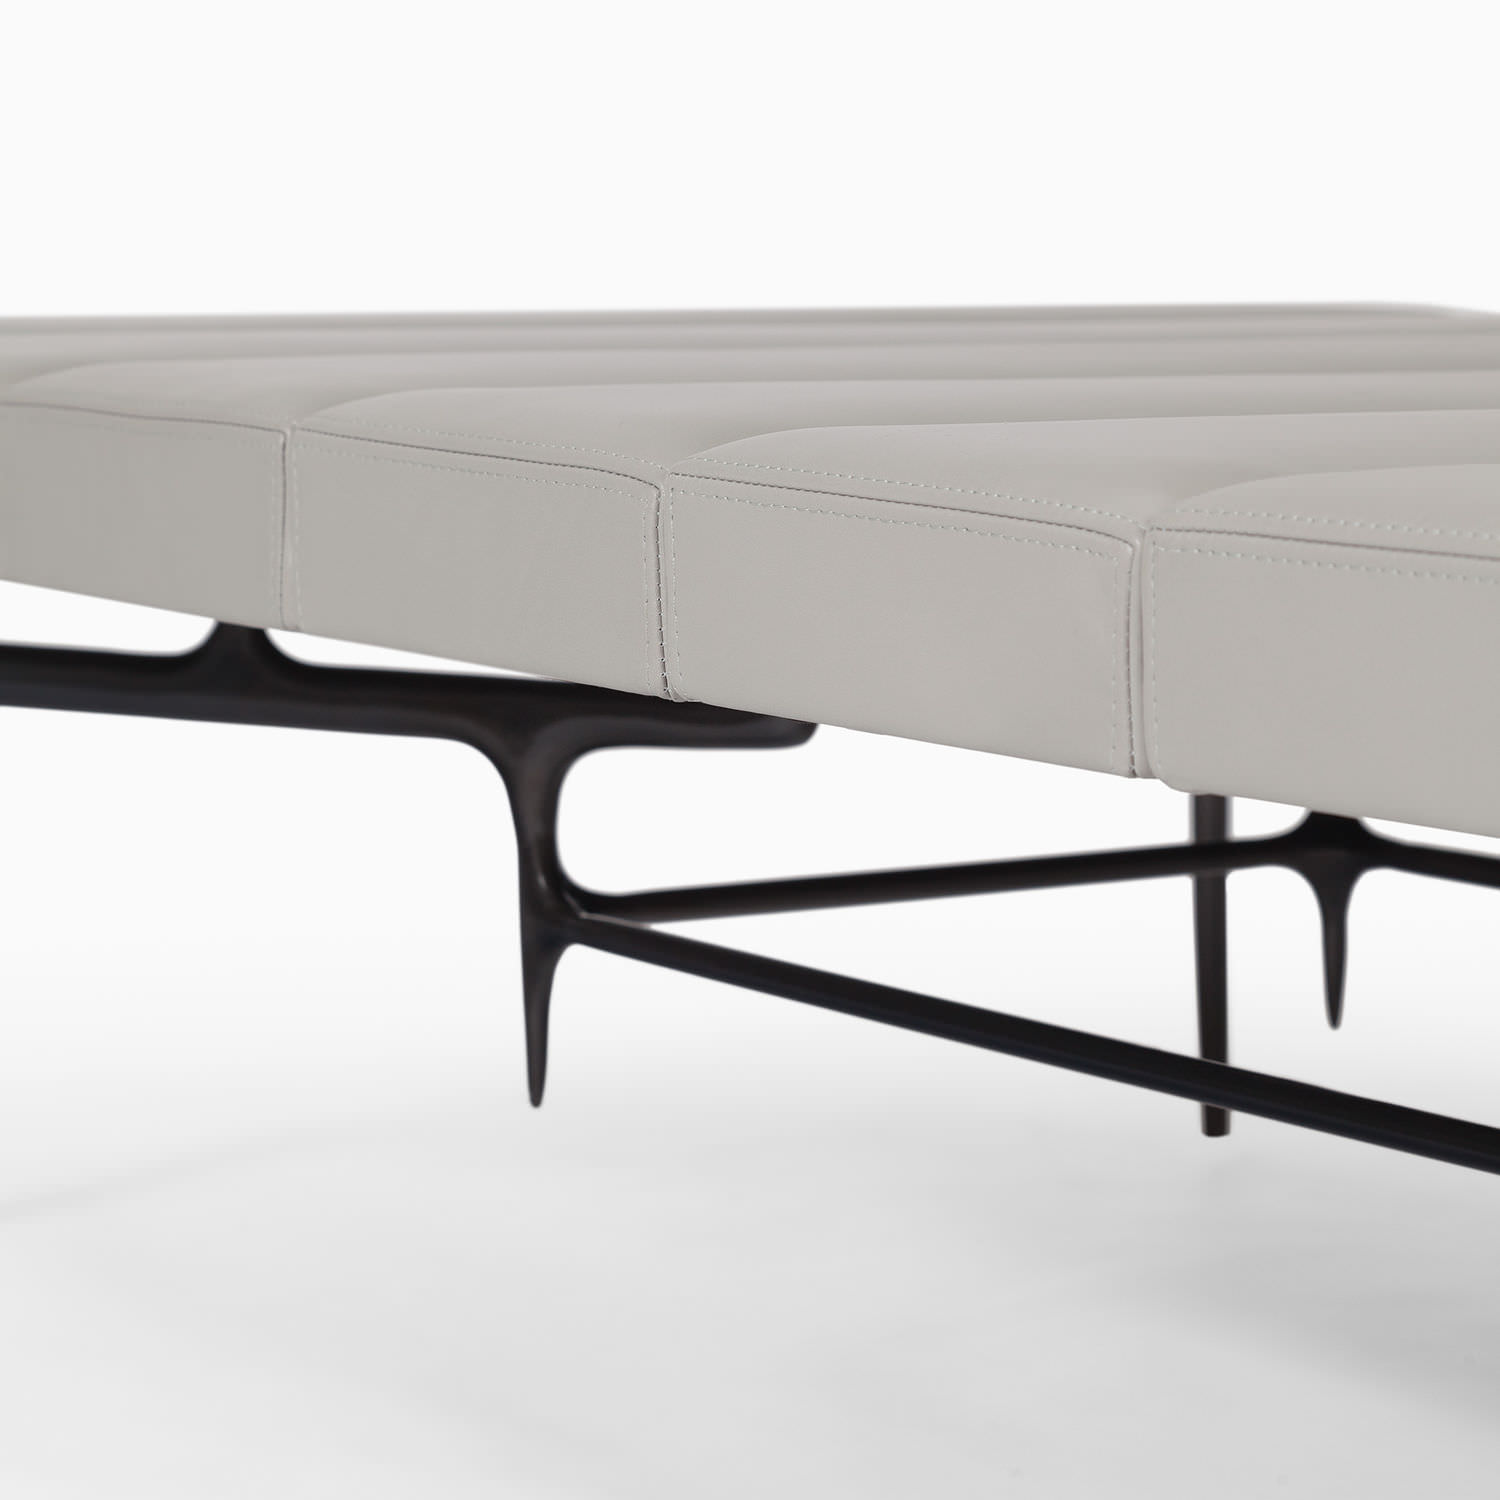 century furniture gray sven modern product daybed scandinavian bench shadow article mid sofas and